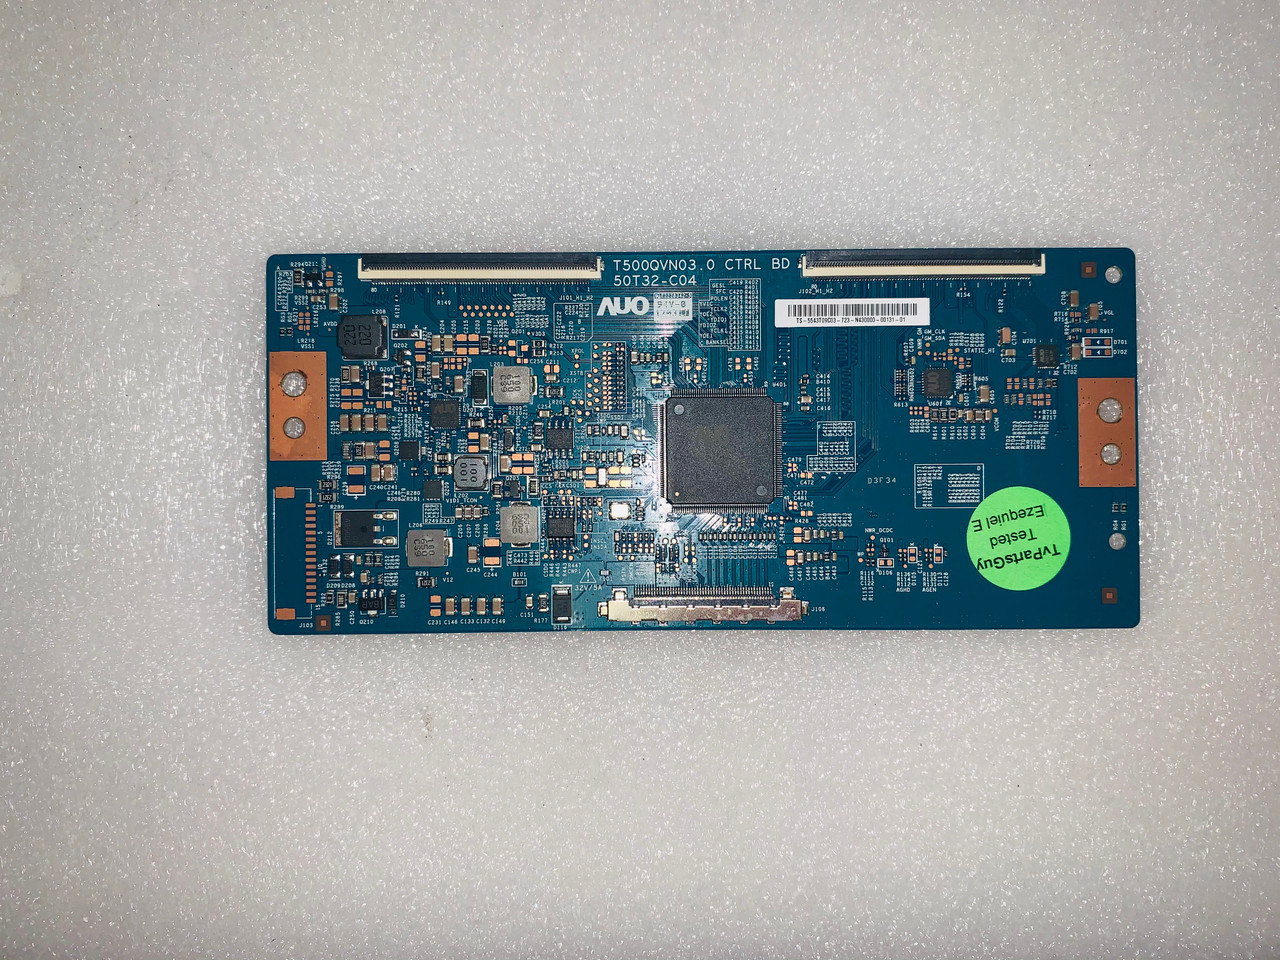 Westinghouse WD43UB4530 Tcon board T500QVN03.0 / 55.43T09.C01